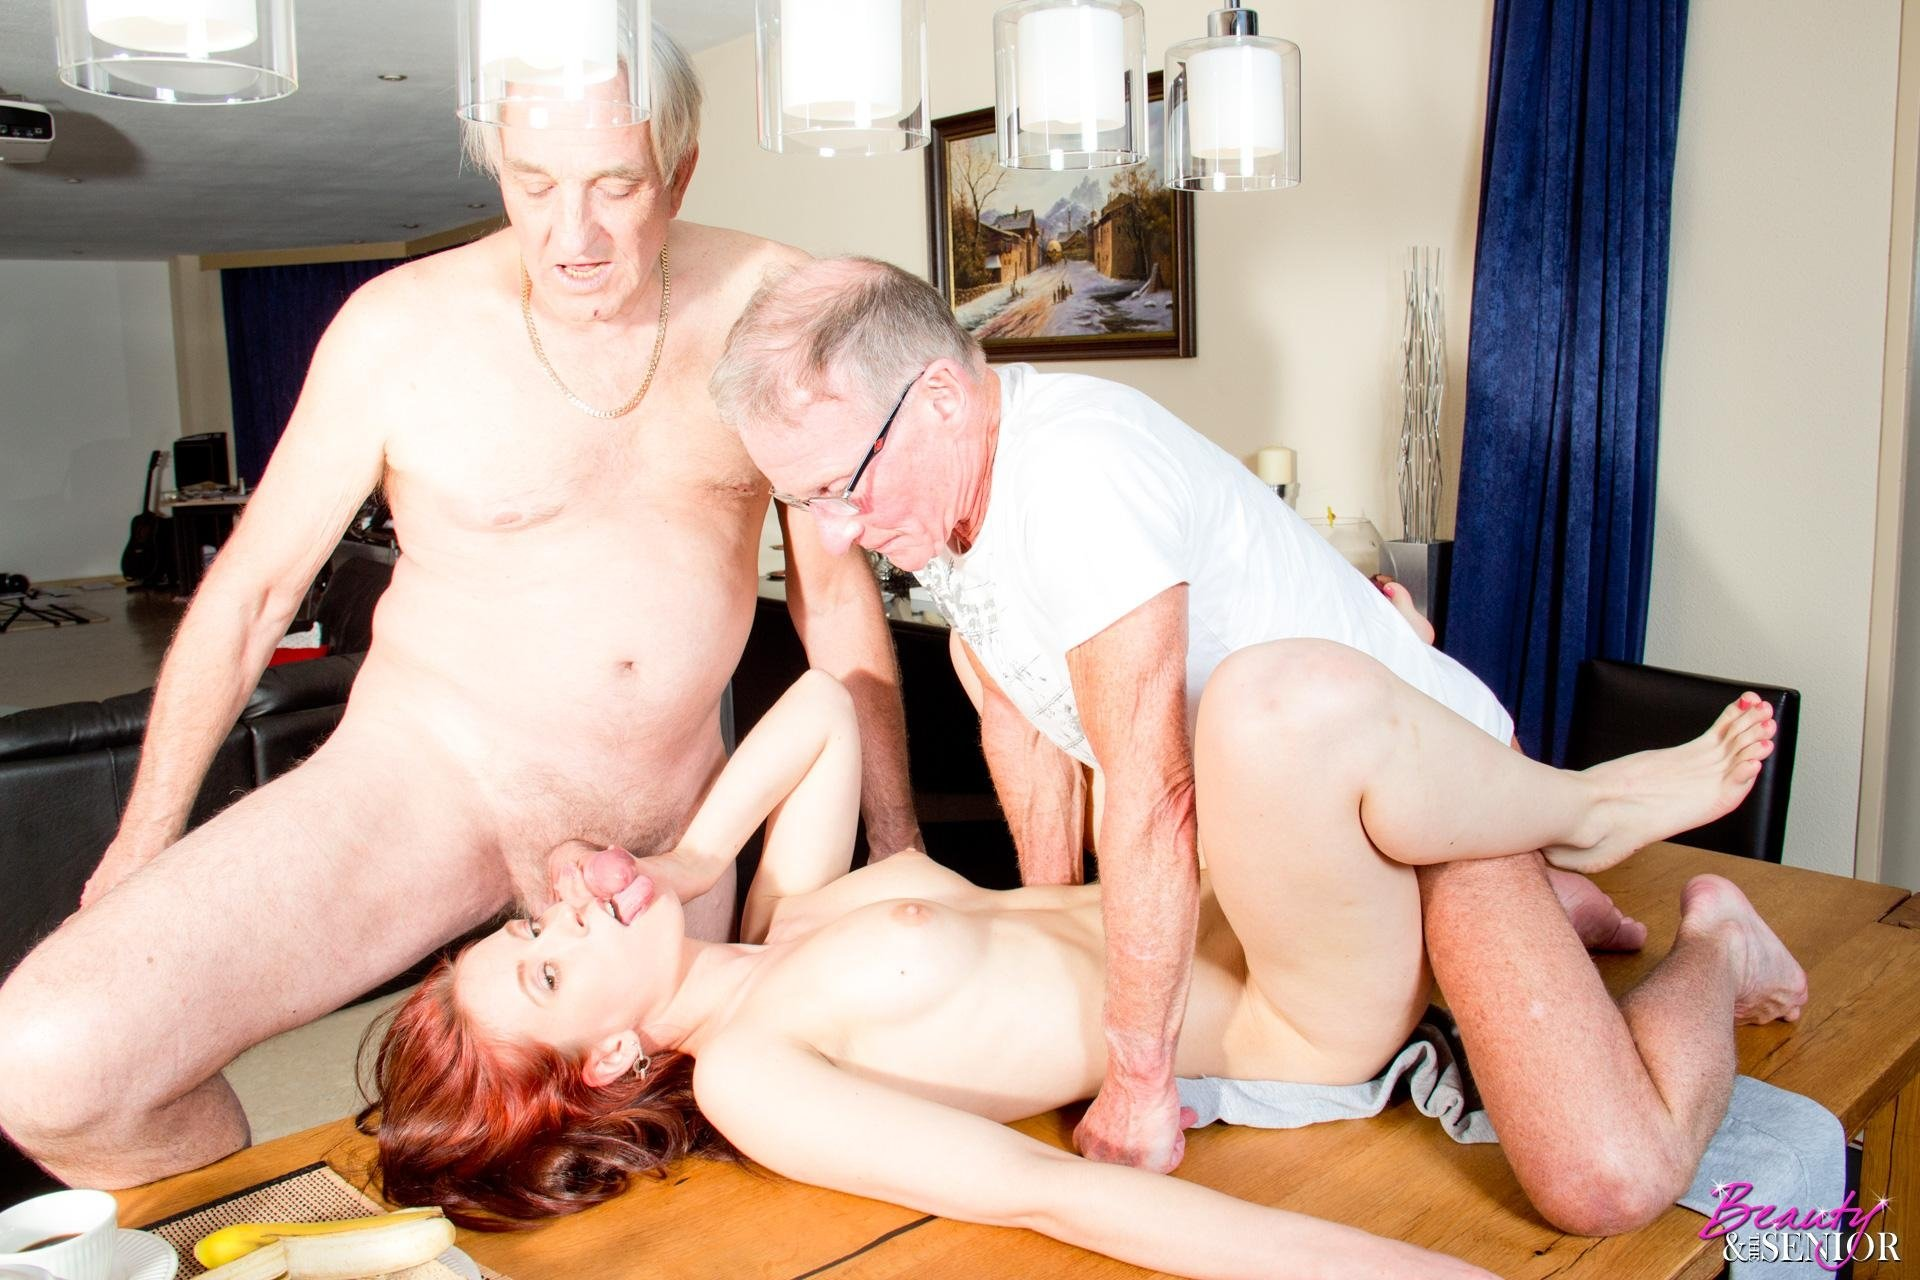 Hardcore sex young and old threesome pussy, pirates sex scene